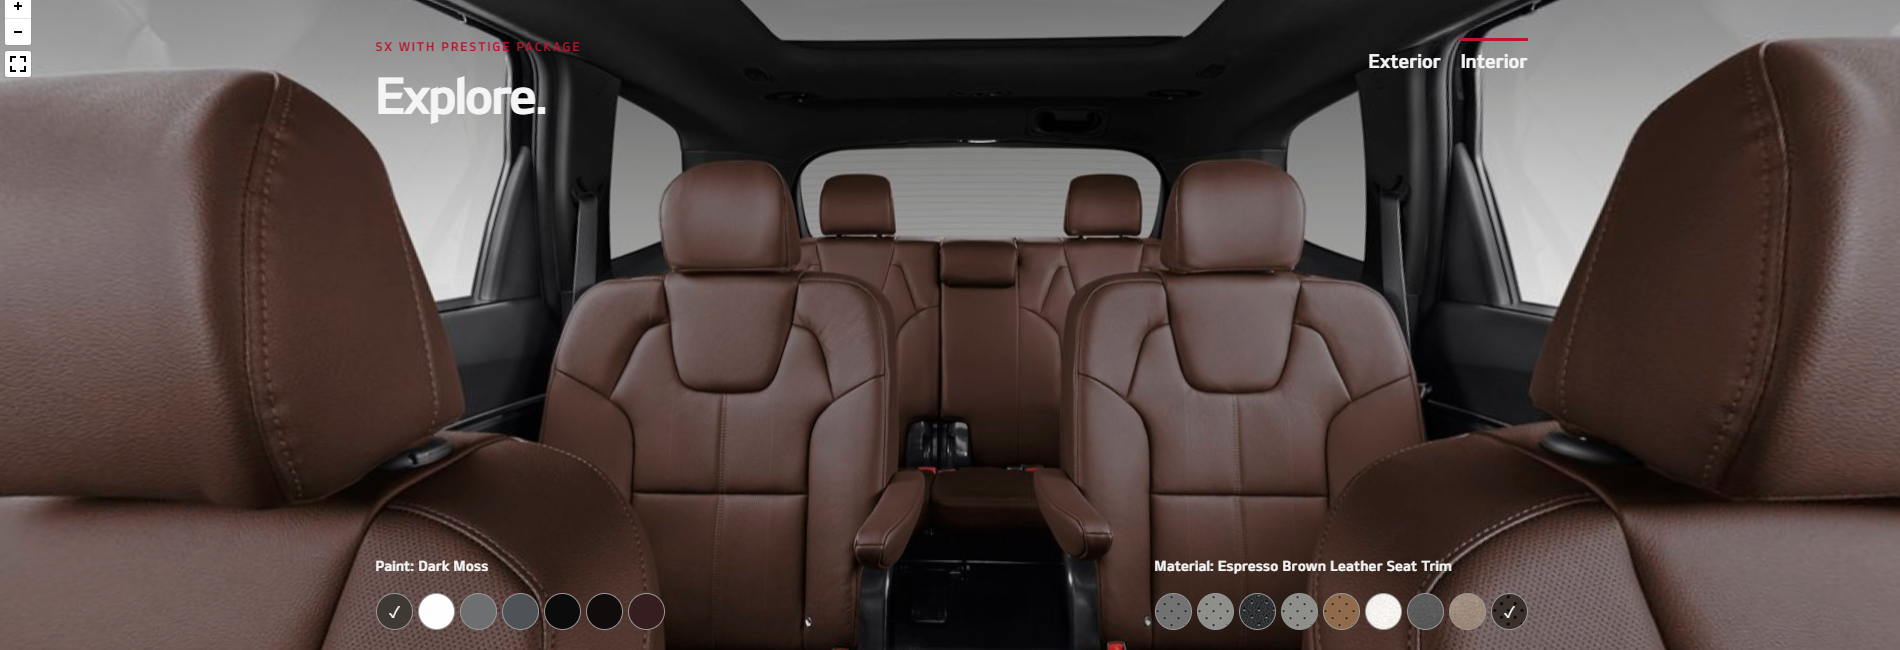 2020 Kia Telluride Espresso Brown Leather Seat Trim